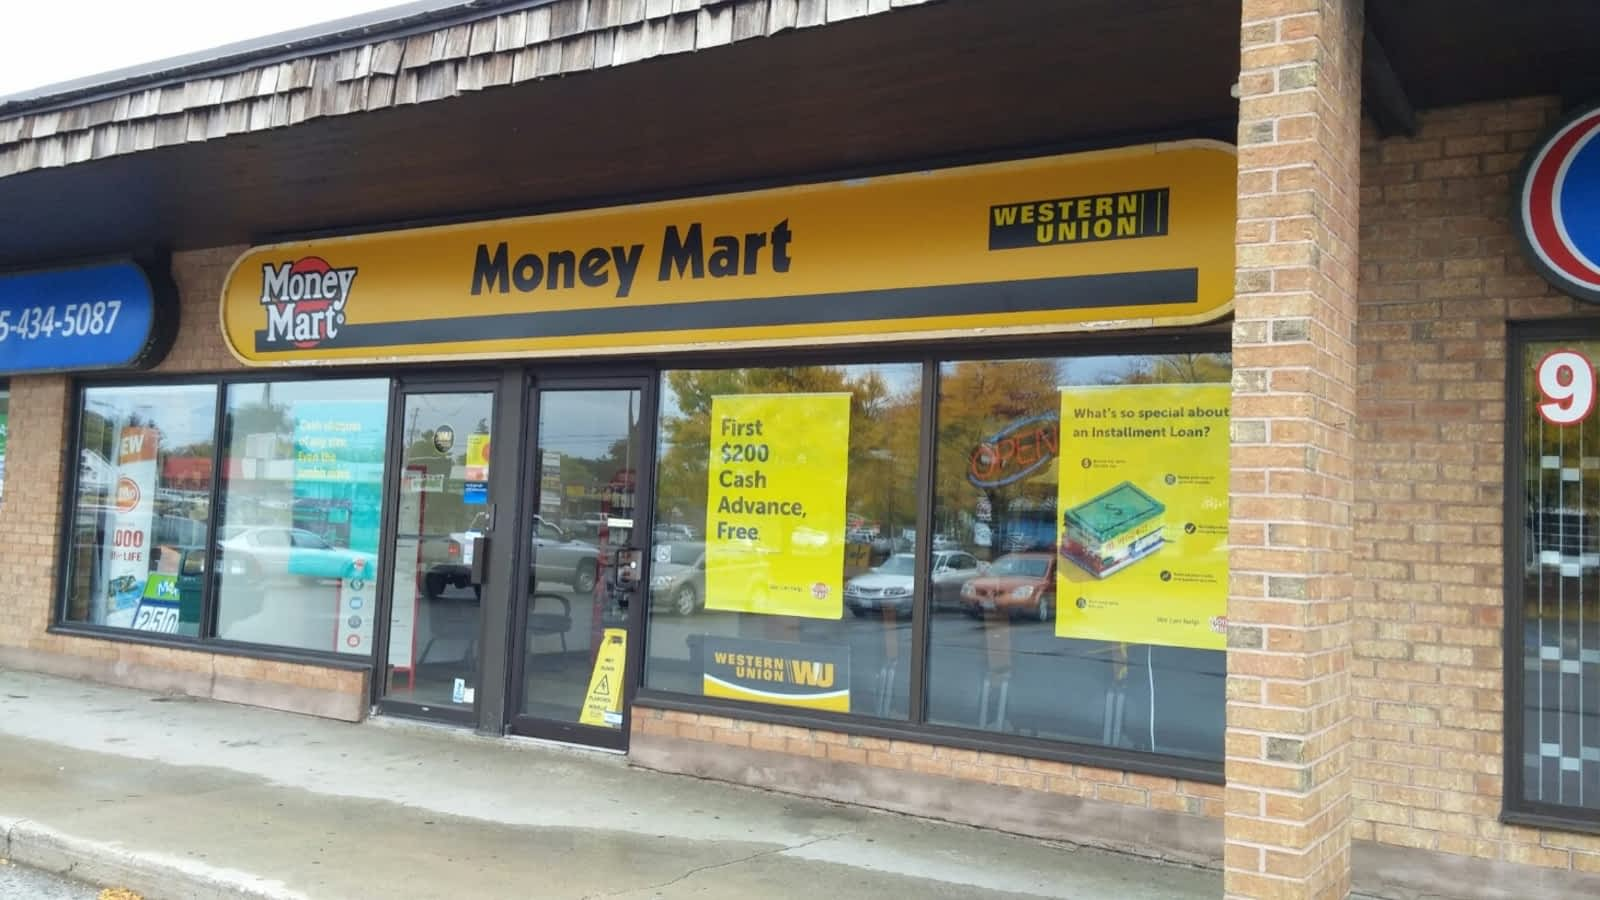 Money Mart  1053 Simcoe St N, Oshawa, On. Certified Nursing Assistant Degree. Winthrop University Scholarships. Security Services In San Diego. Graduate Programs In School Psychology. Bendel Executive Suites Apex Home Inspections. Senior Moving Companies Expedia Ski Vacations. Chest Pain On Deep Breath Pauls Pest Control. What Are Polyclonal Antibodies